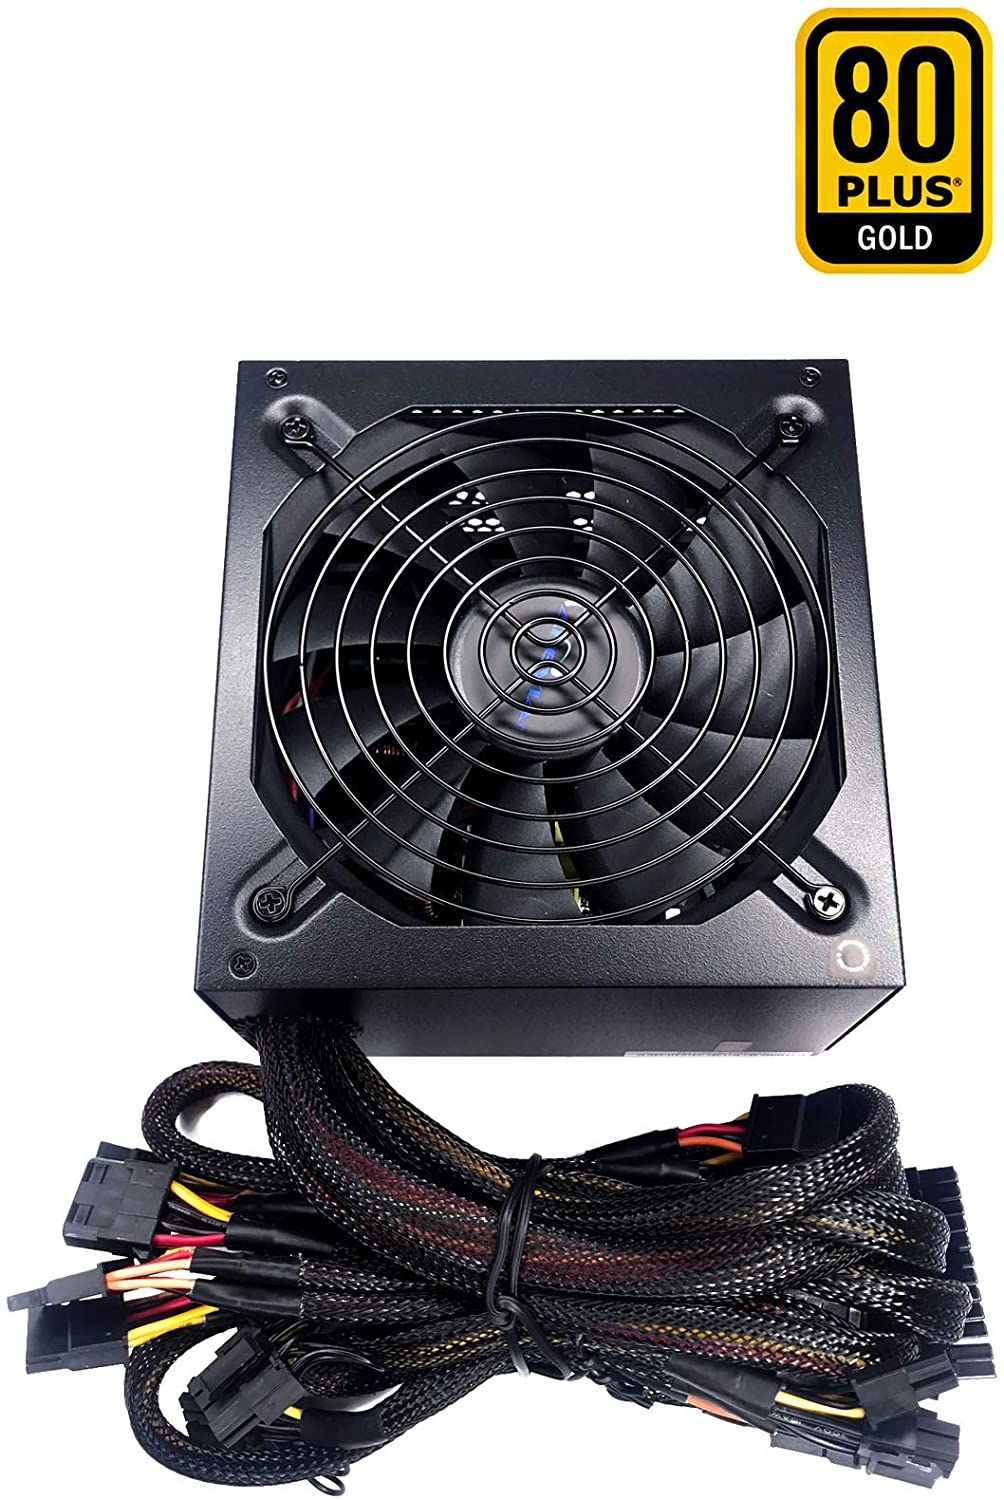 Gold Certified Apevia ATX-PR600W Prestige 600W 80 RoHS Compliance Active PFC ATX Gaming Power Supply